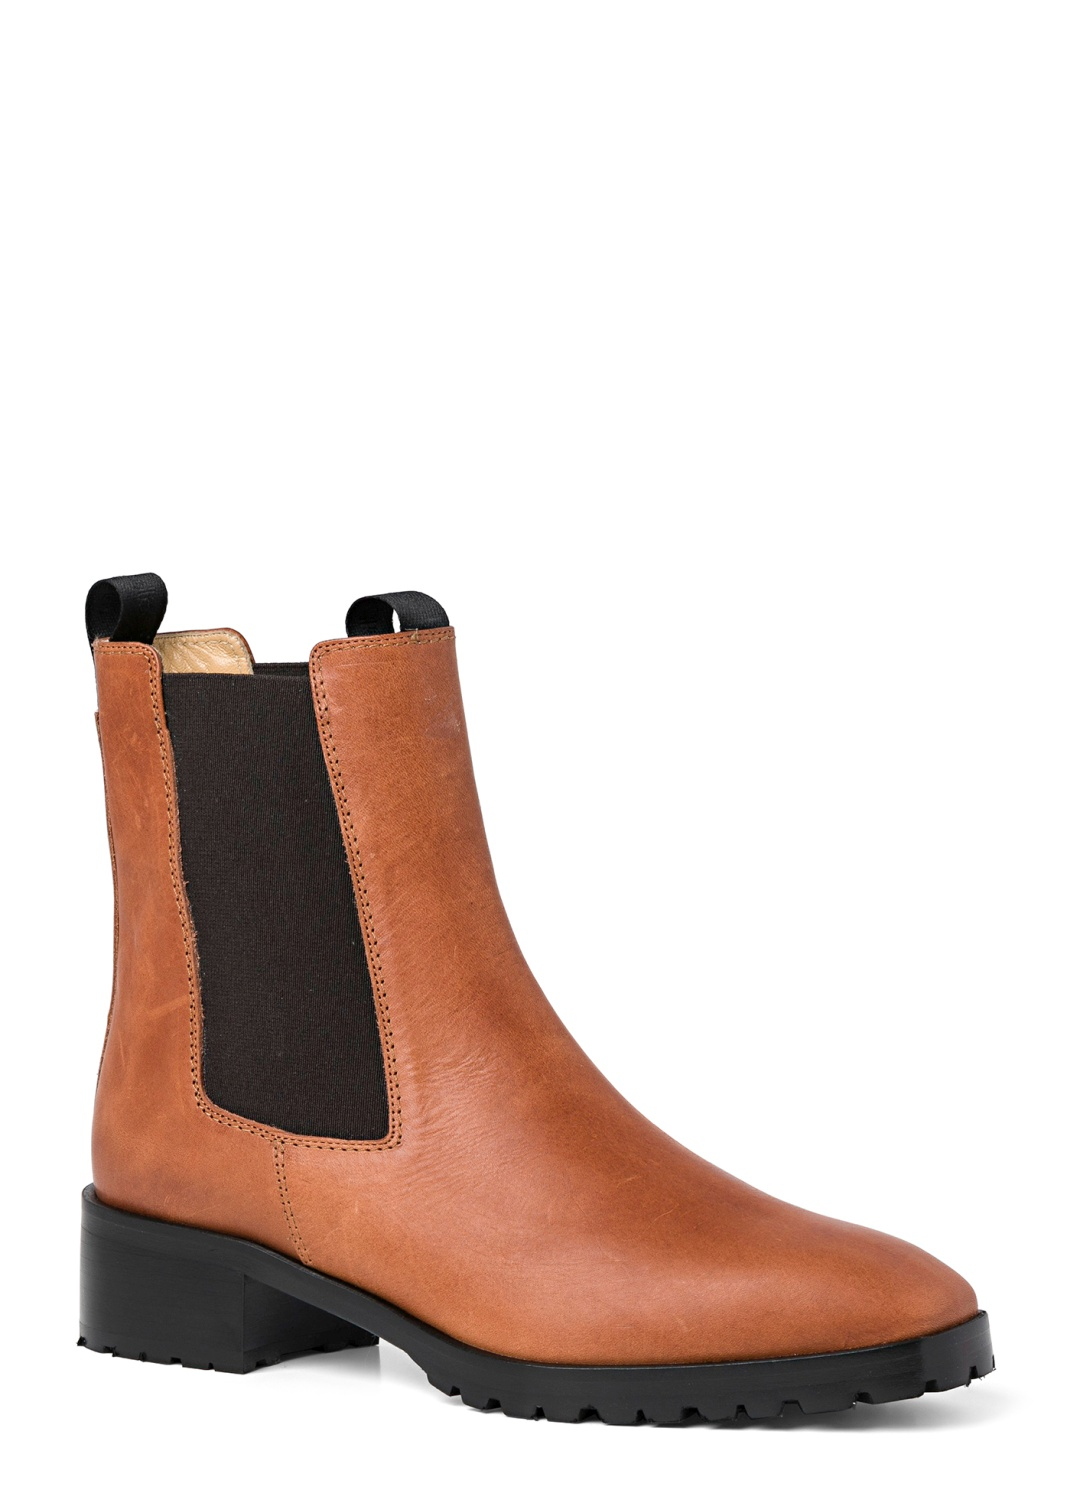 15_Karlo Veg Leather Chelsea Boot image number 1